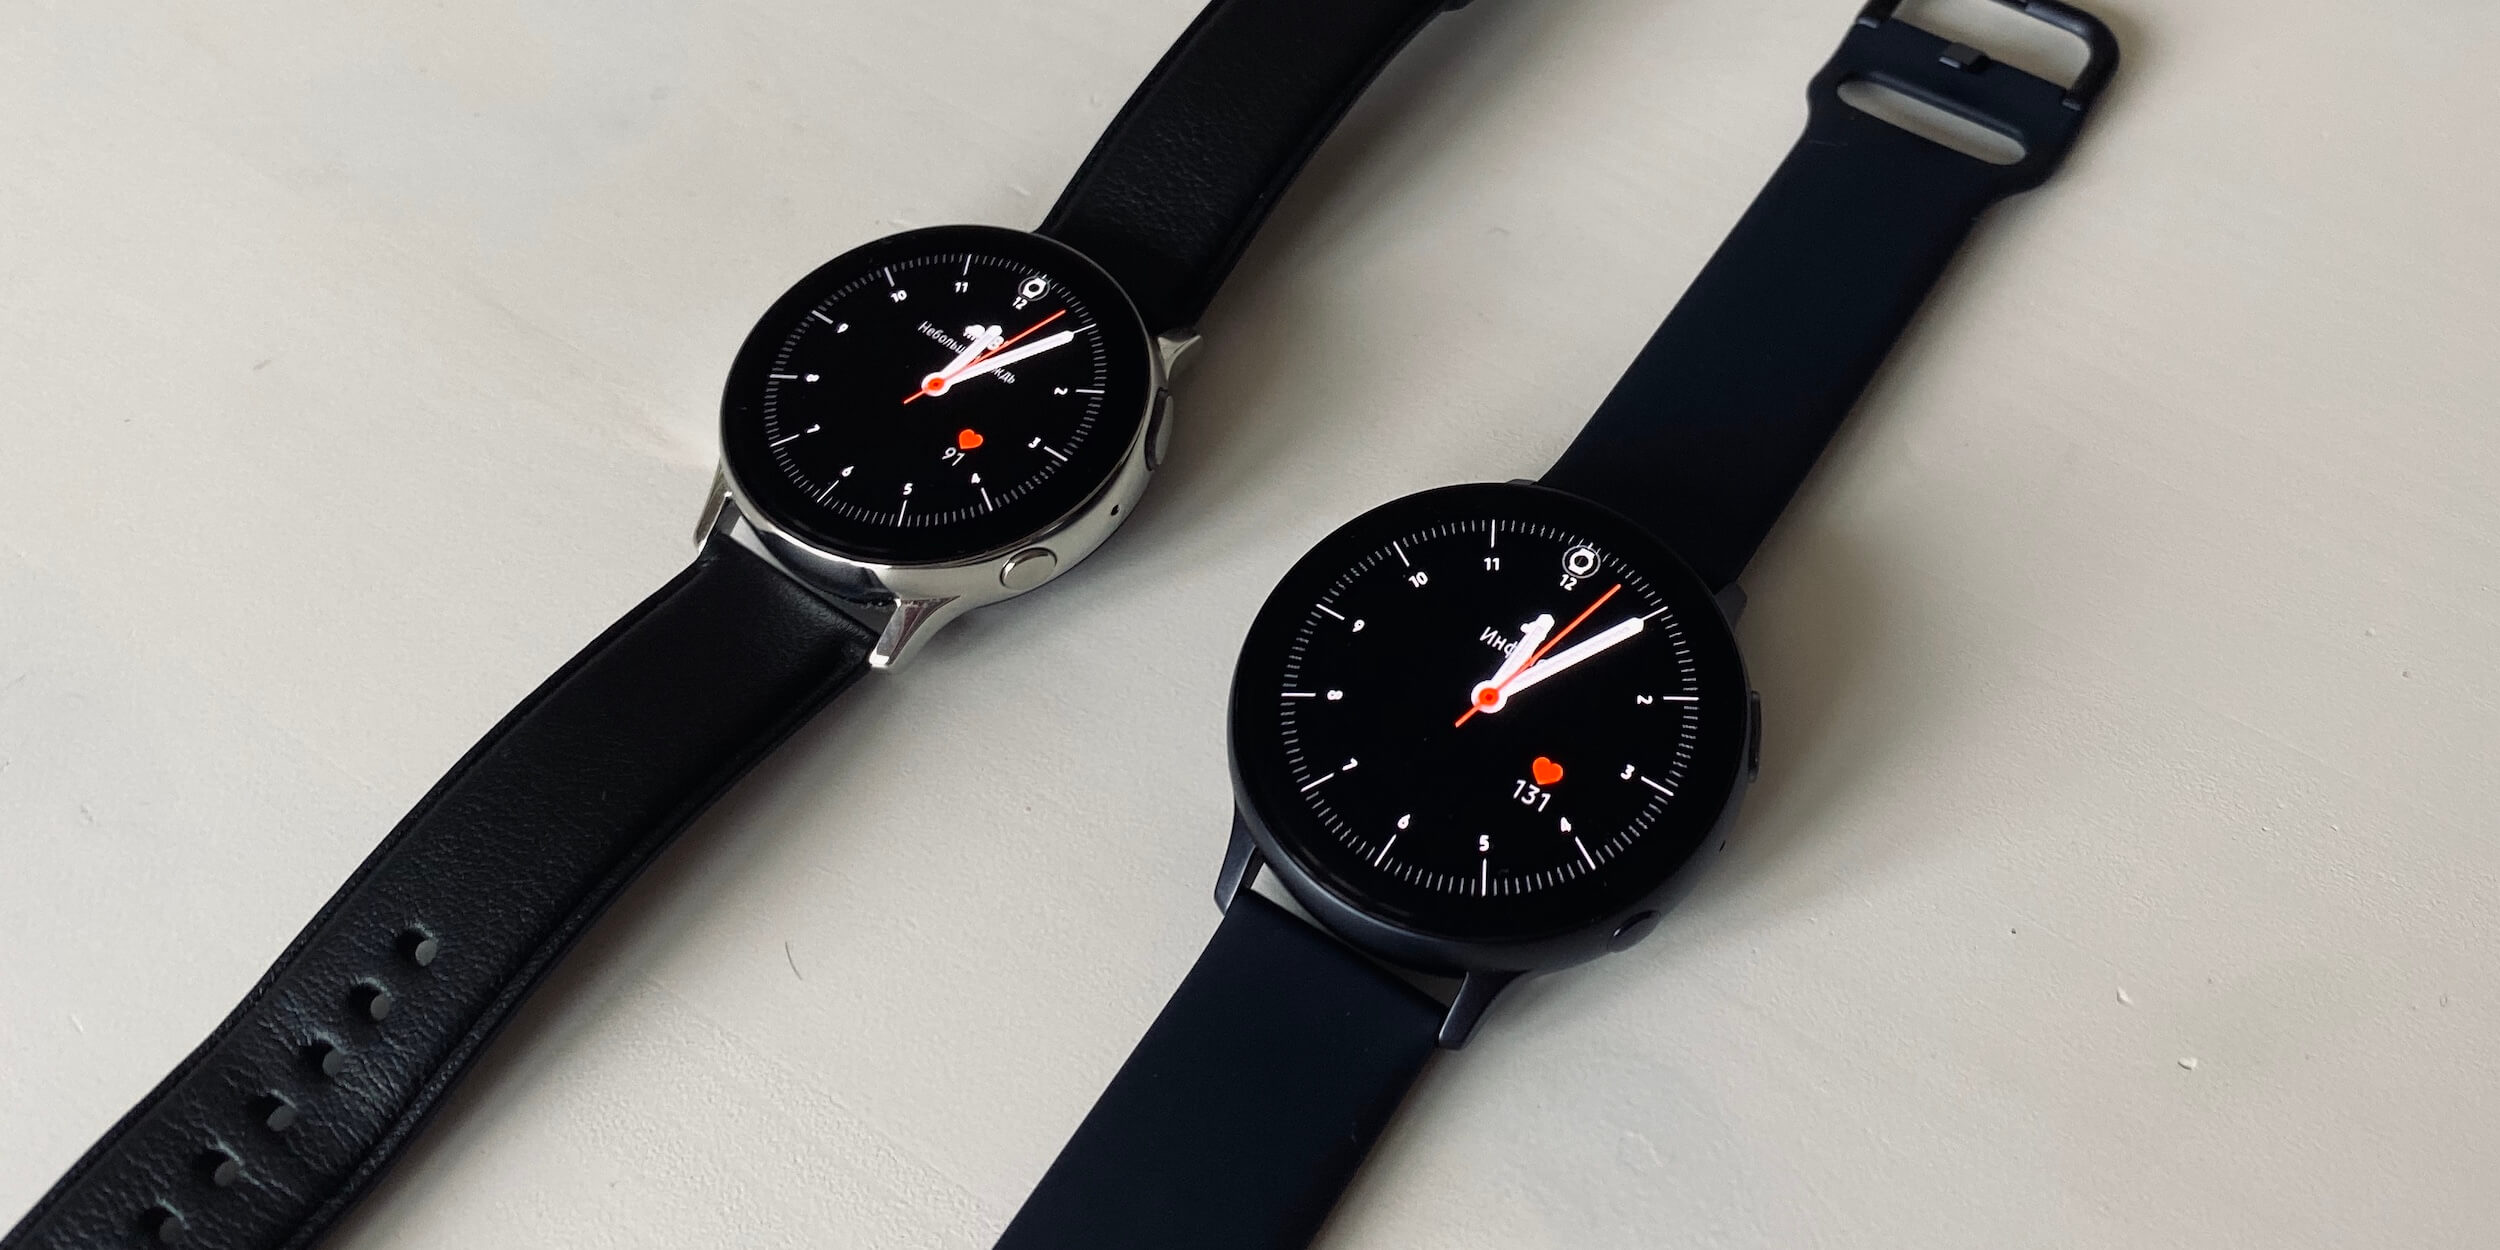 Samsung Galaxy Watch Active 2: ремешки